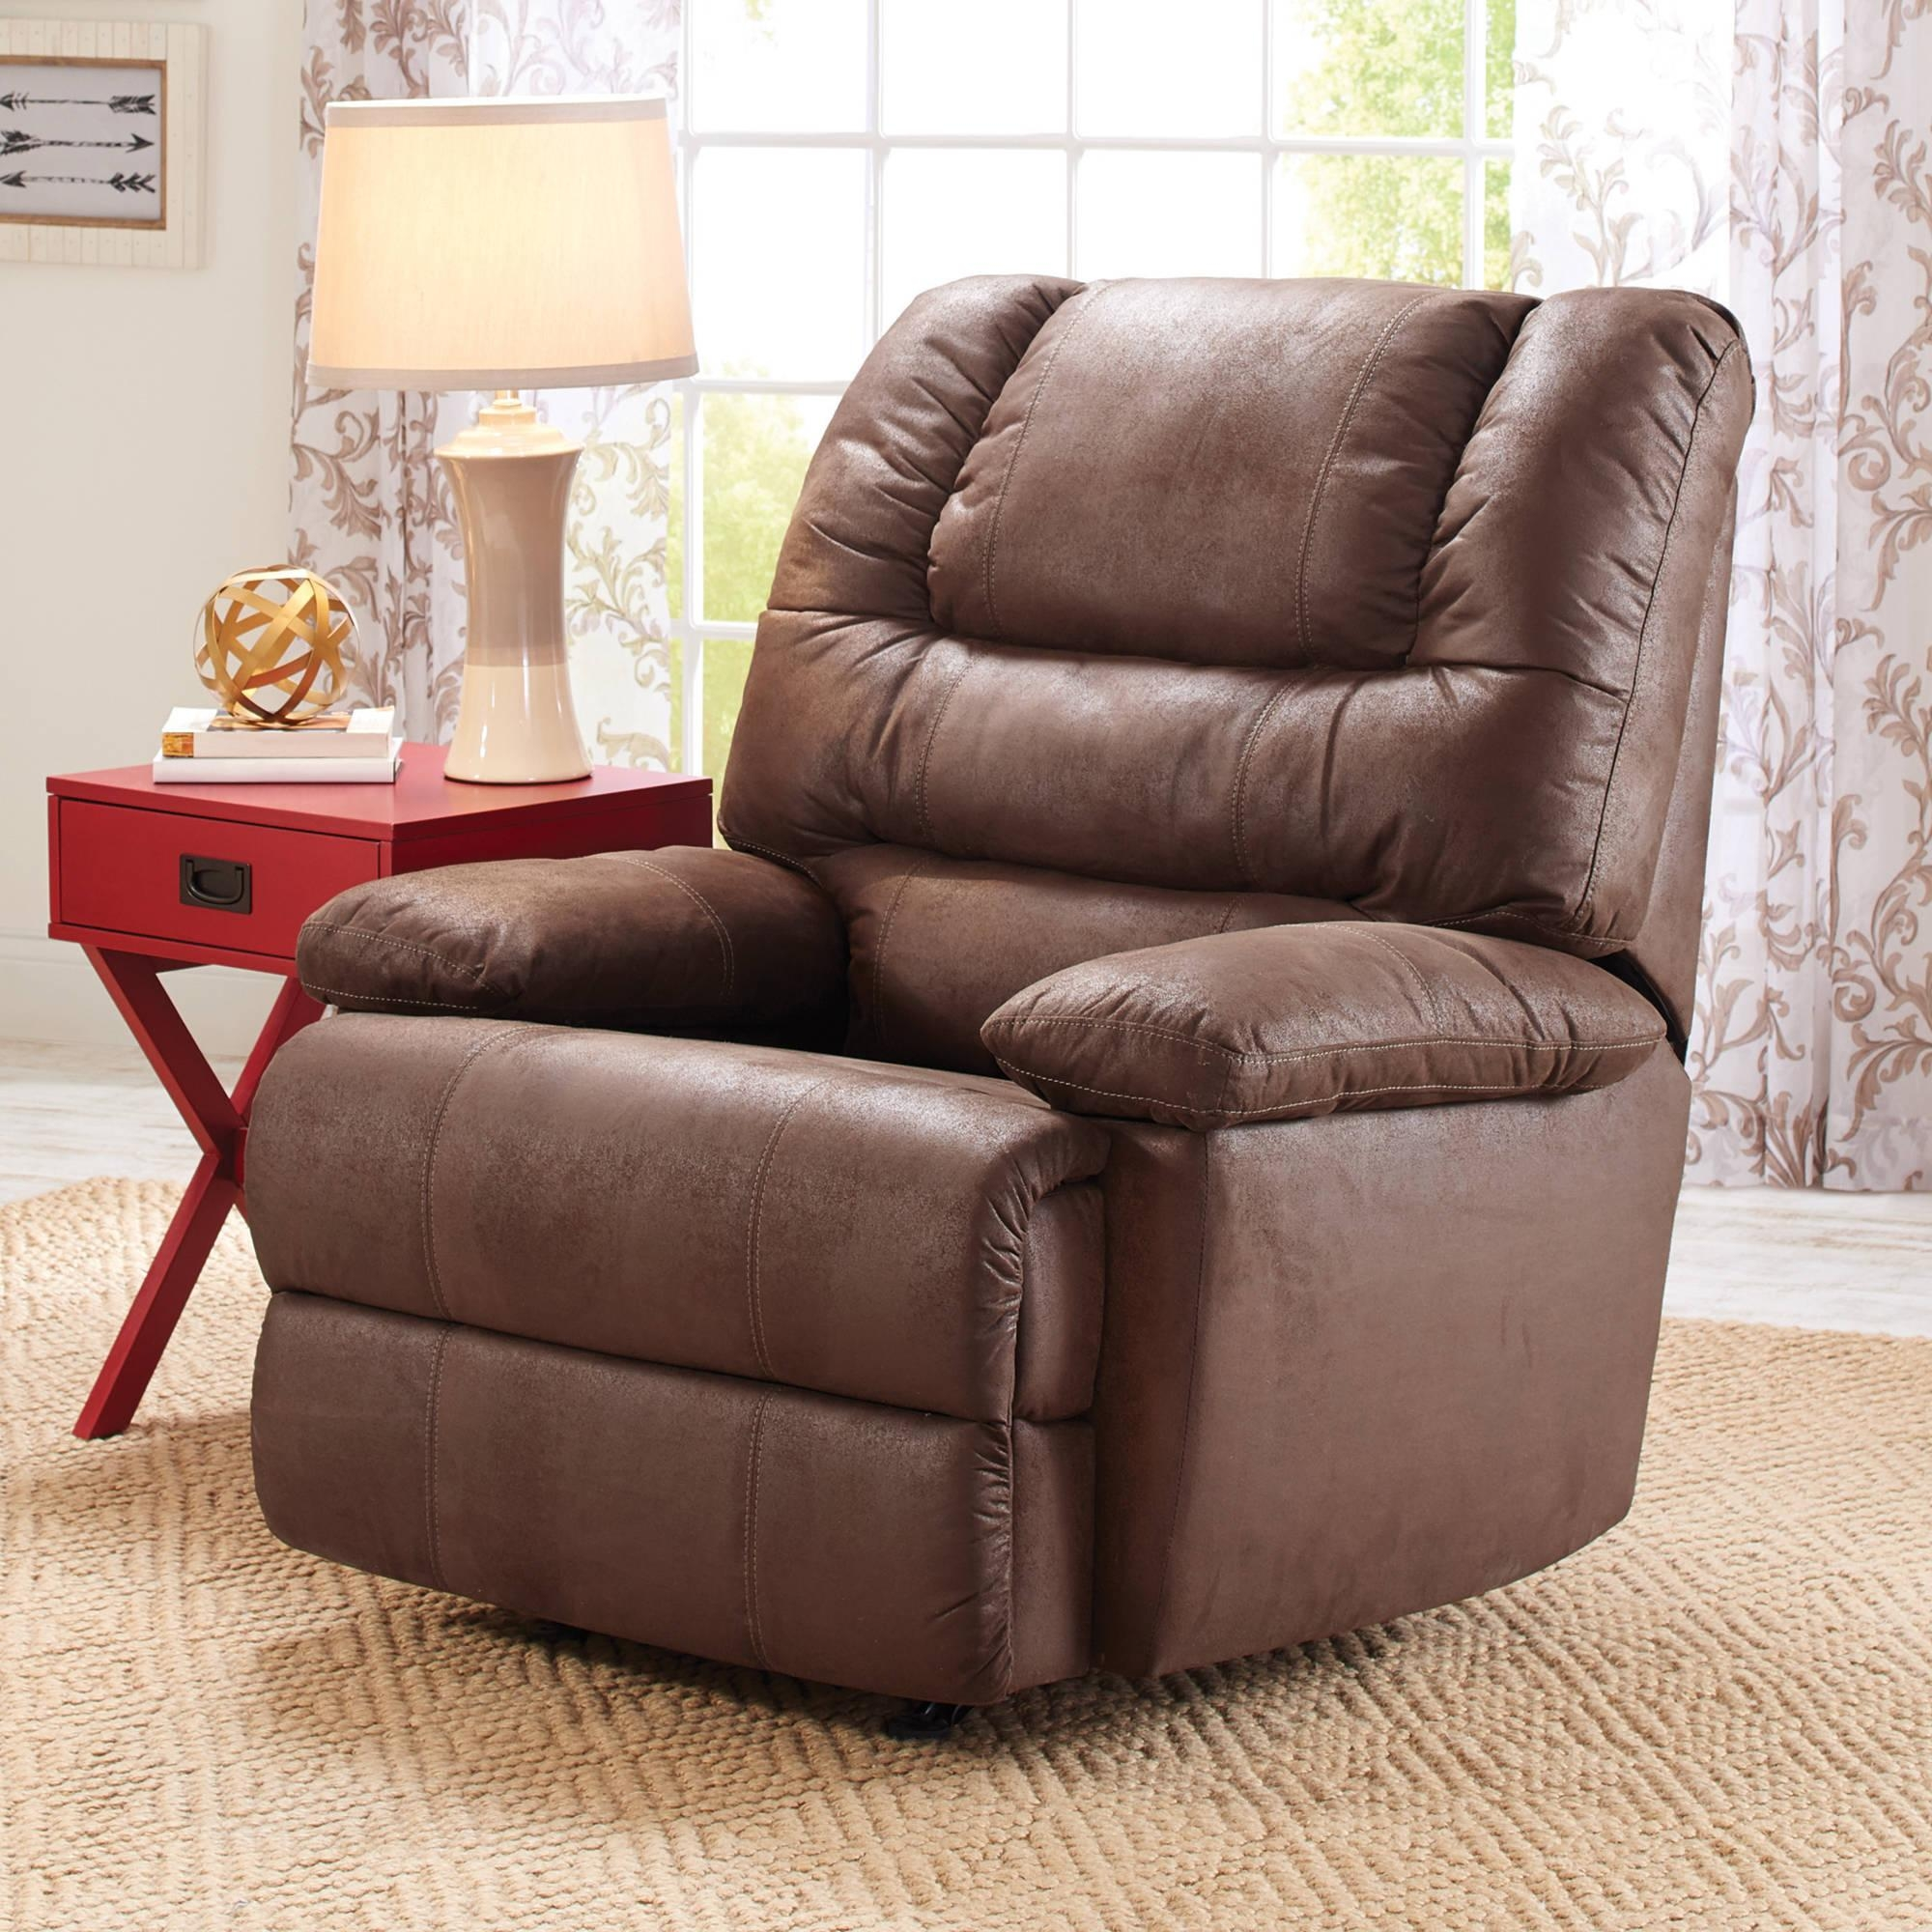 Charming Reclining Sofa Chair 1675 62Ph 361 54 Intended For Sofa Chair Recliner (Image 5 of 20)